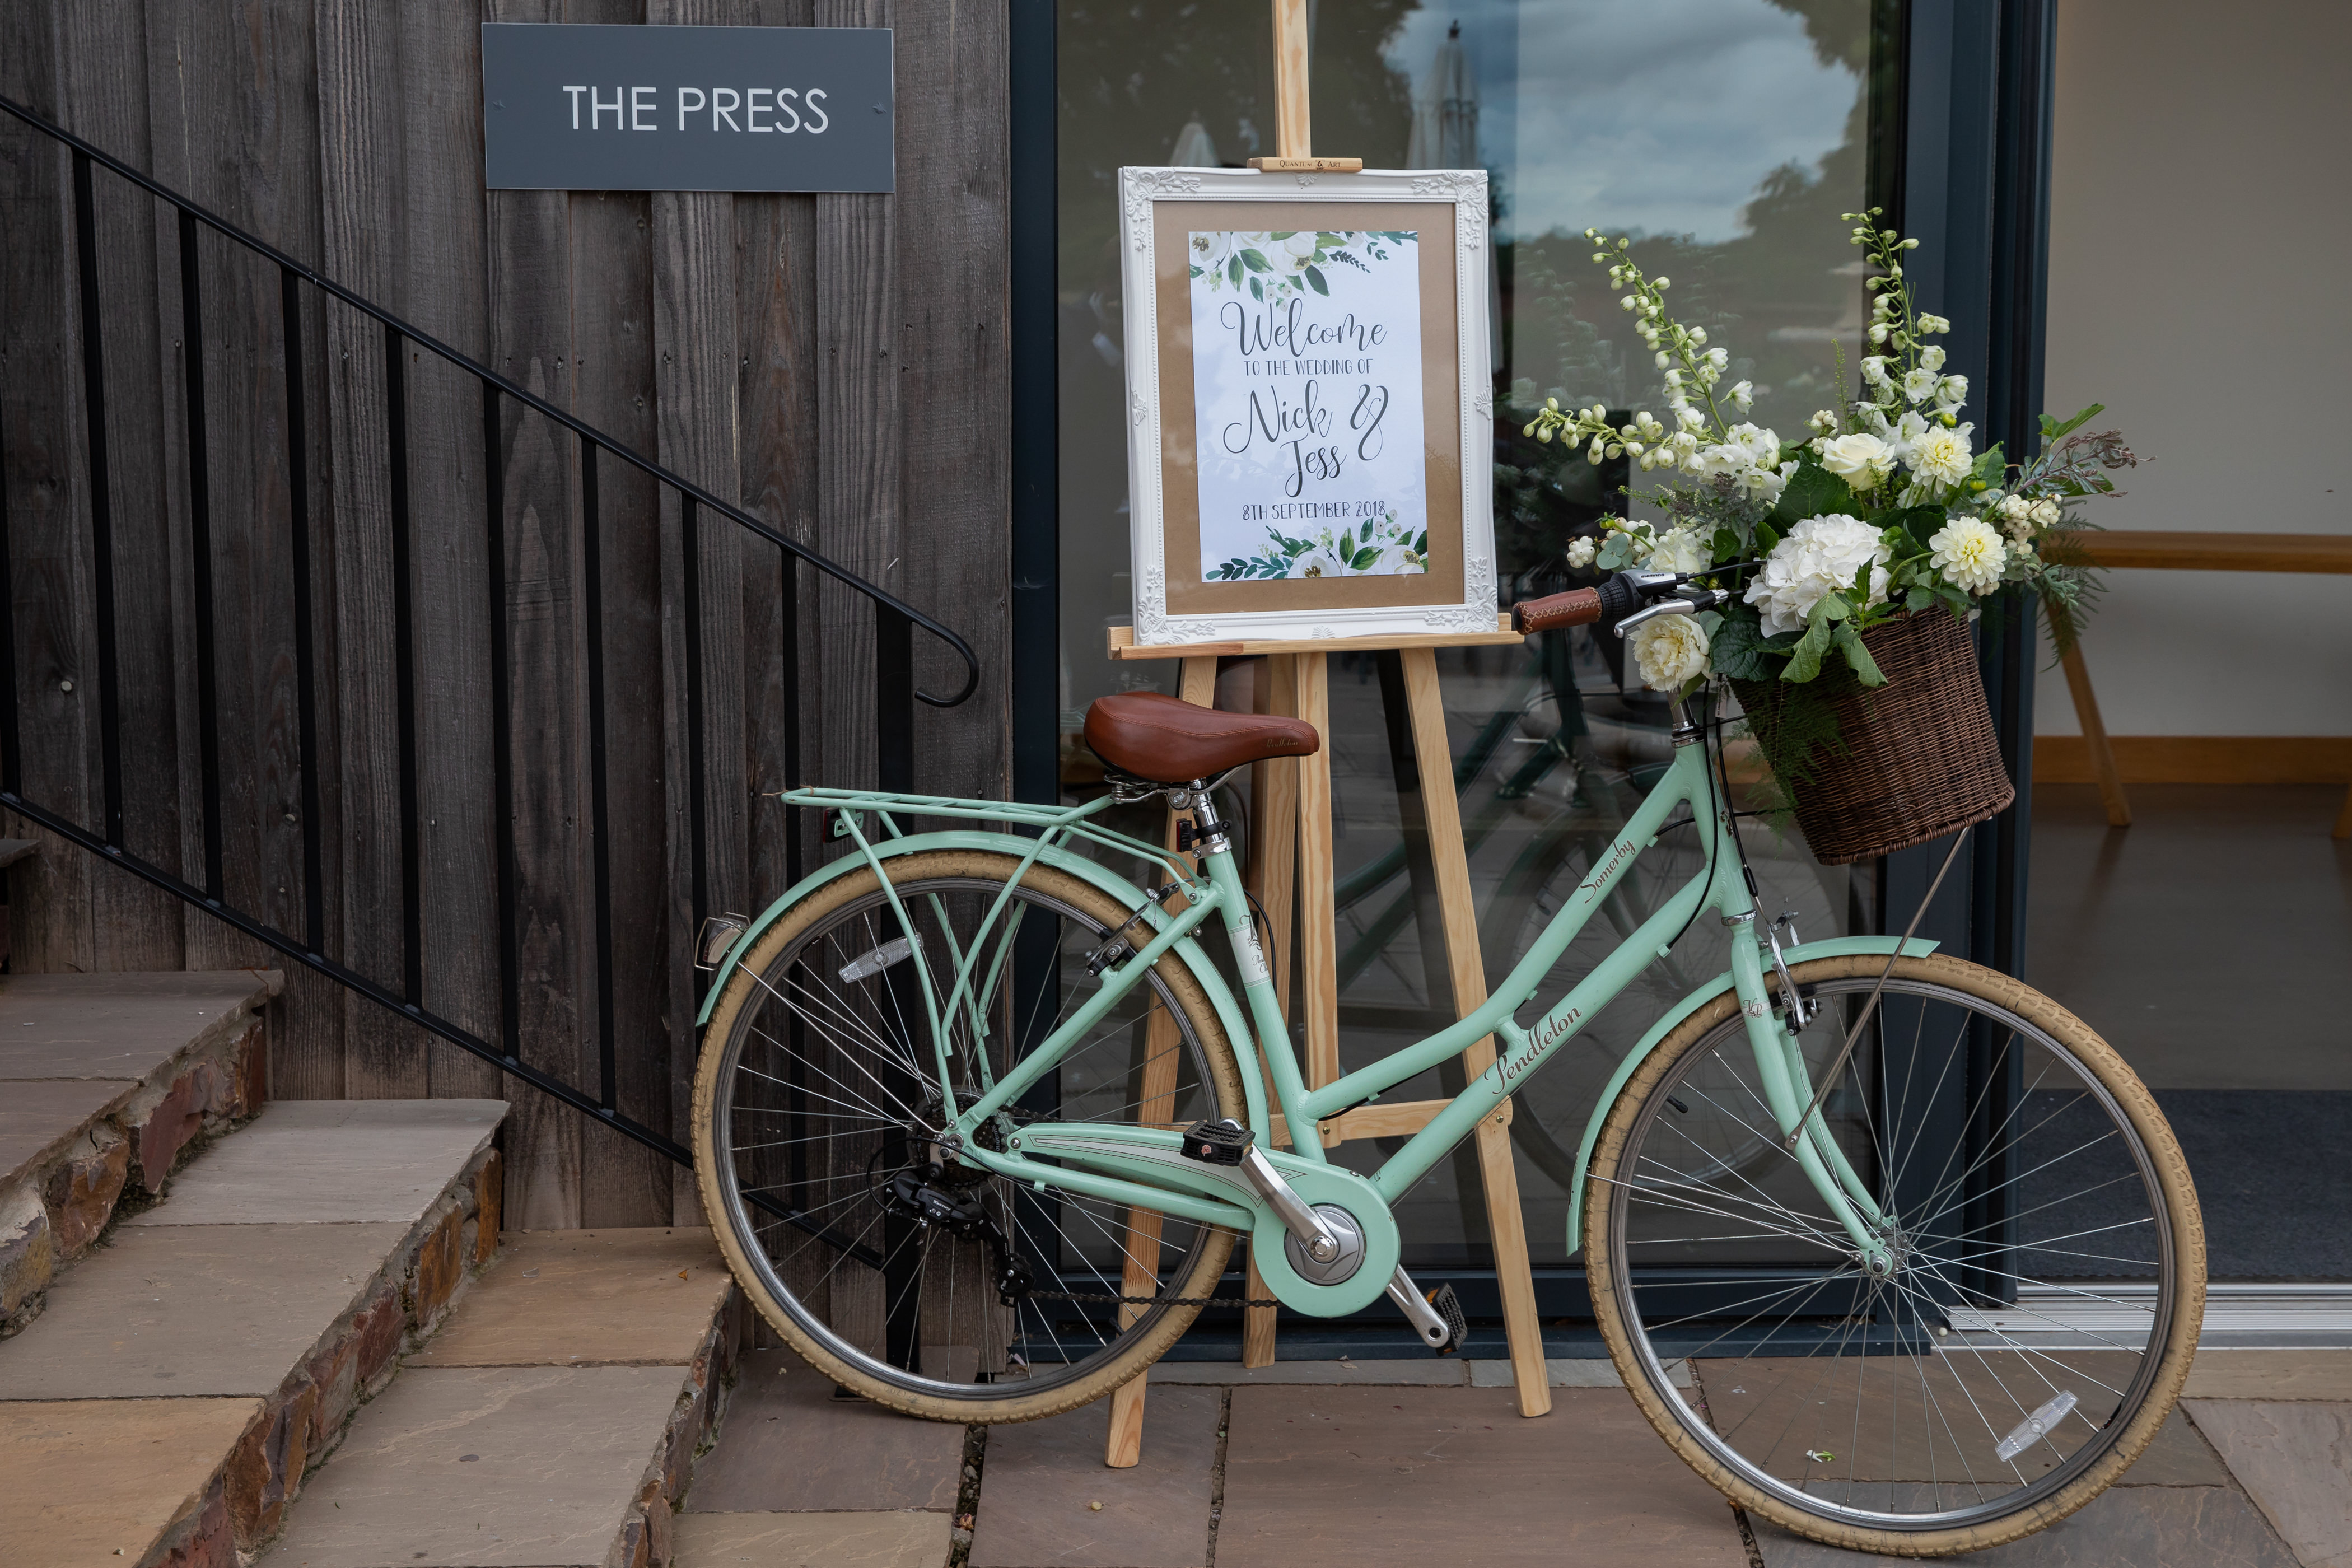 Welcome sign on easel next to bicycle by The Press Bar